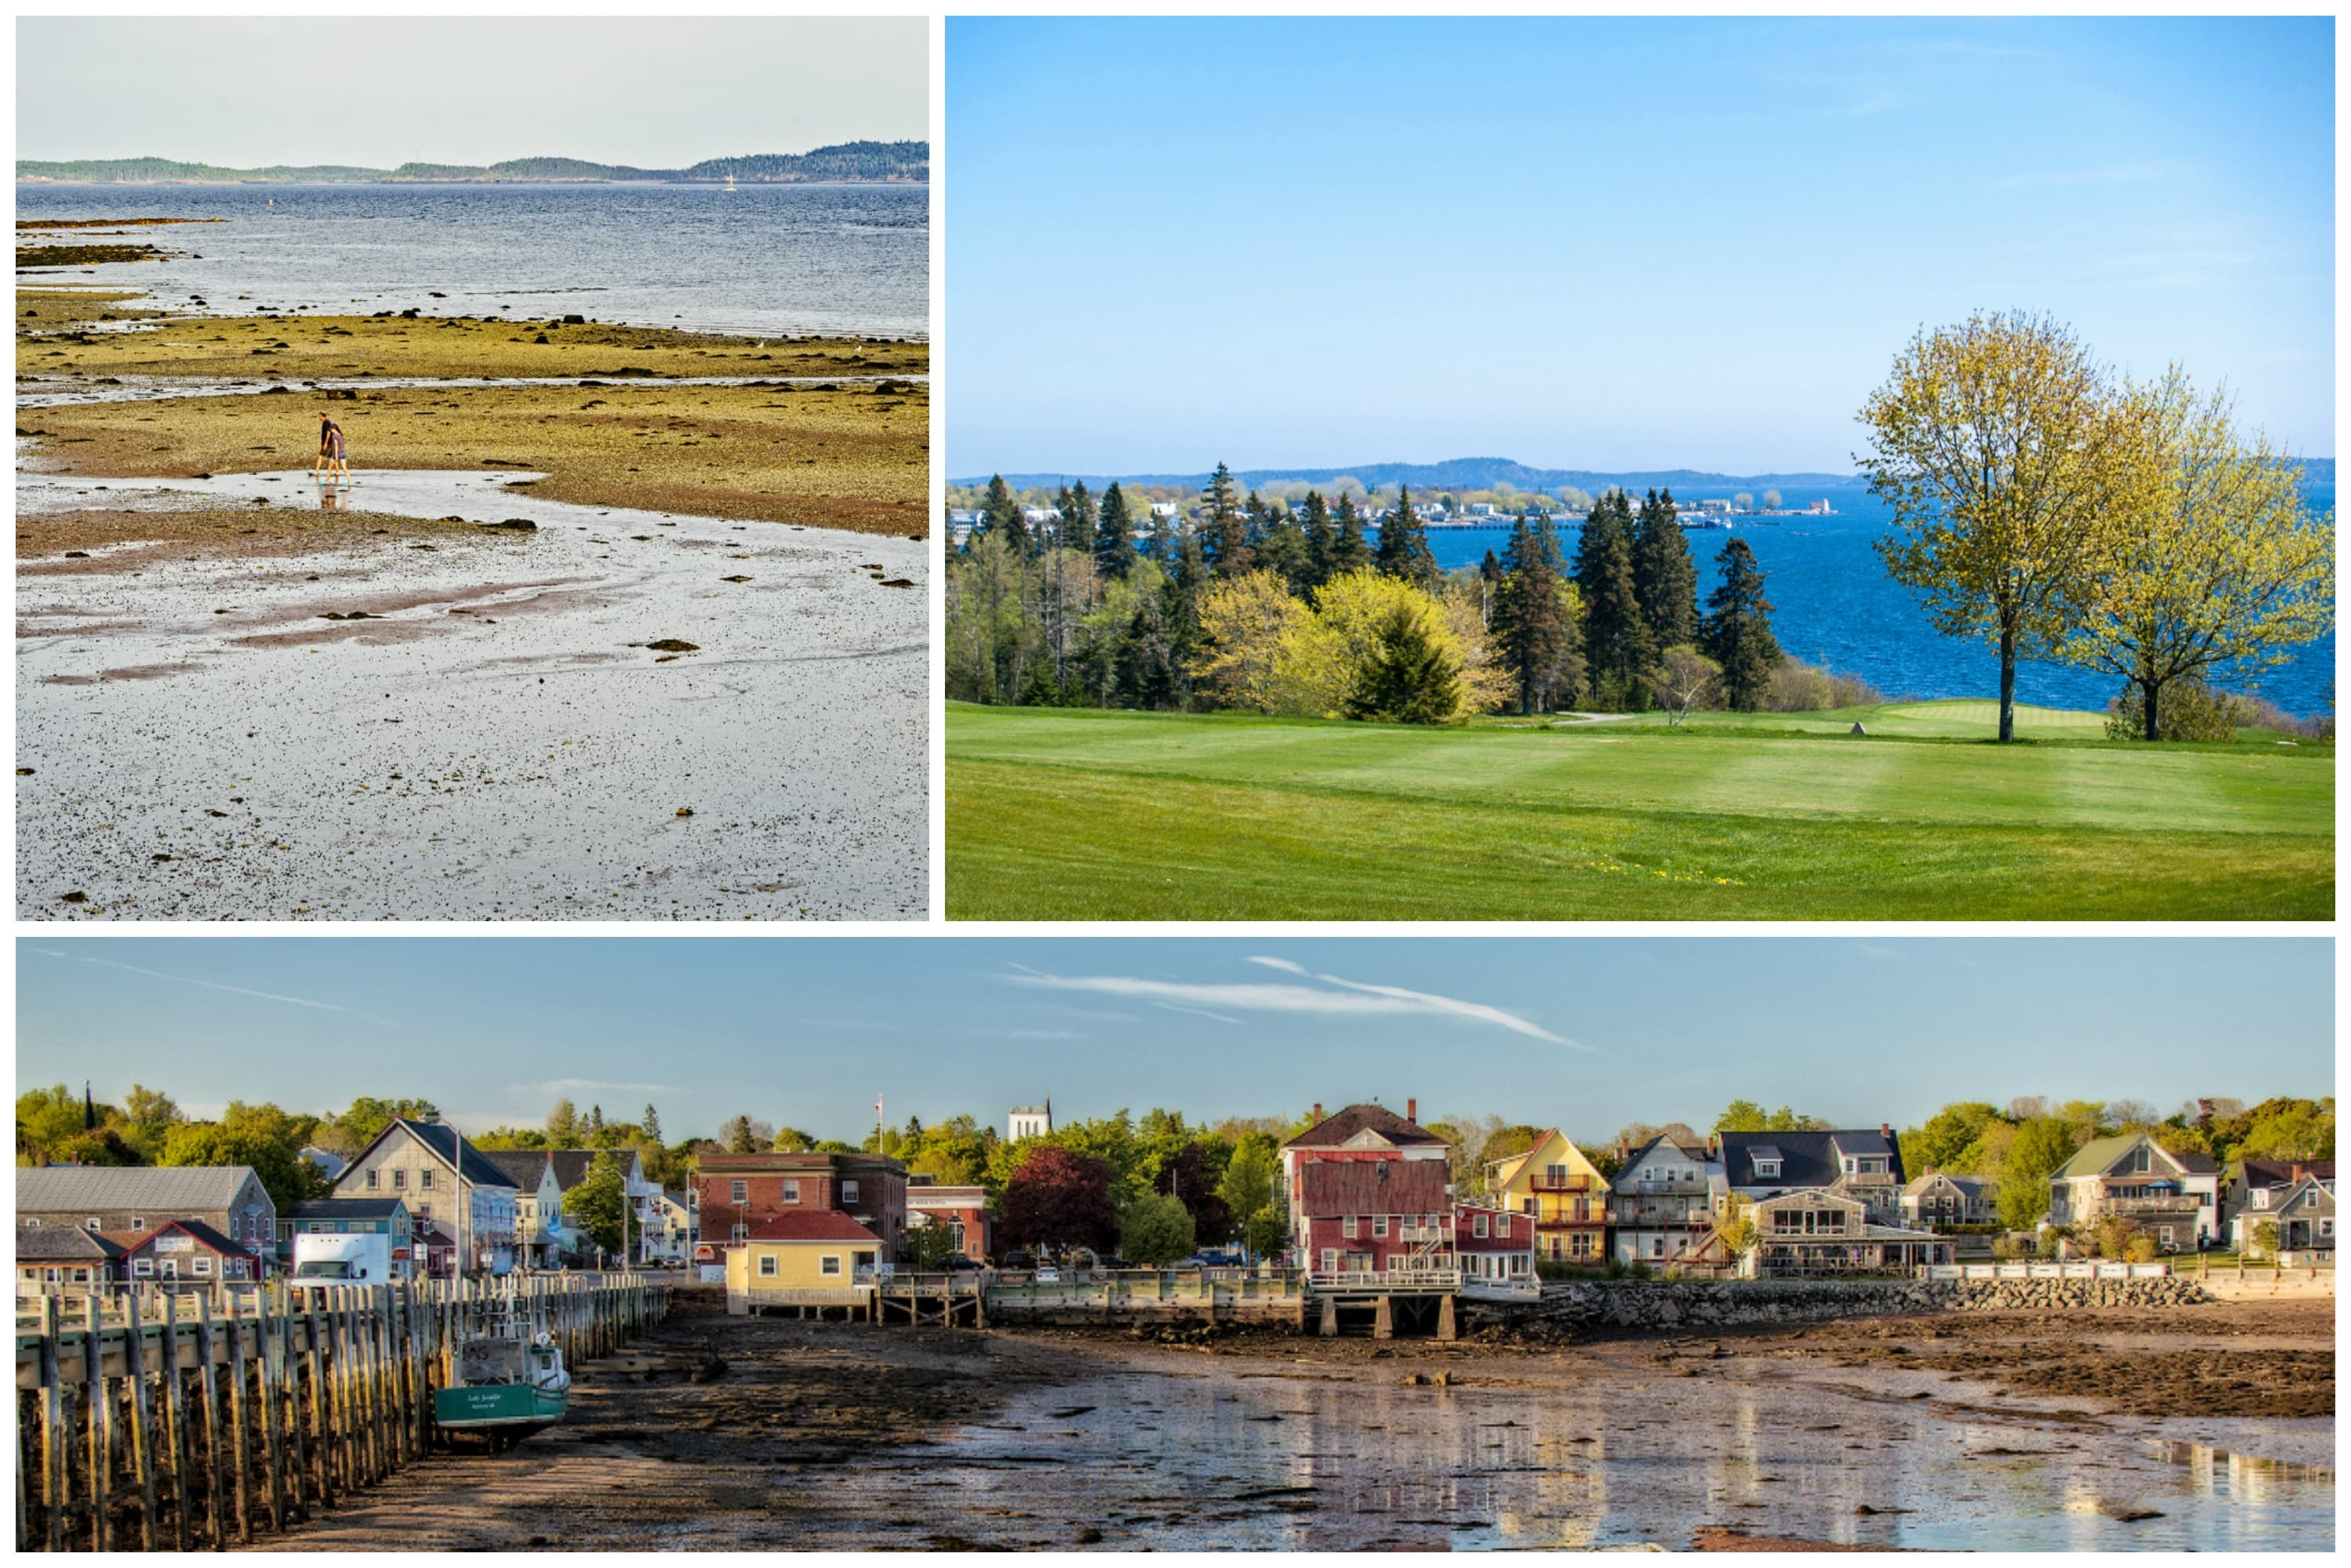 St. Andrews, New Brunswick, a top historical town in Canada